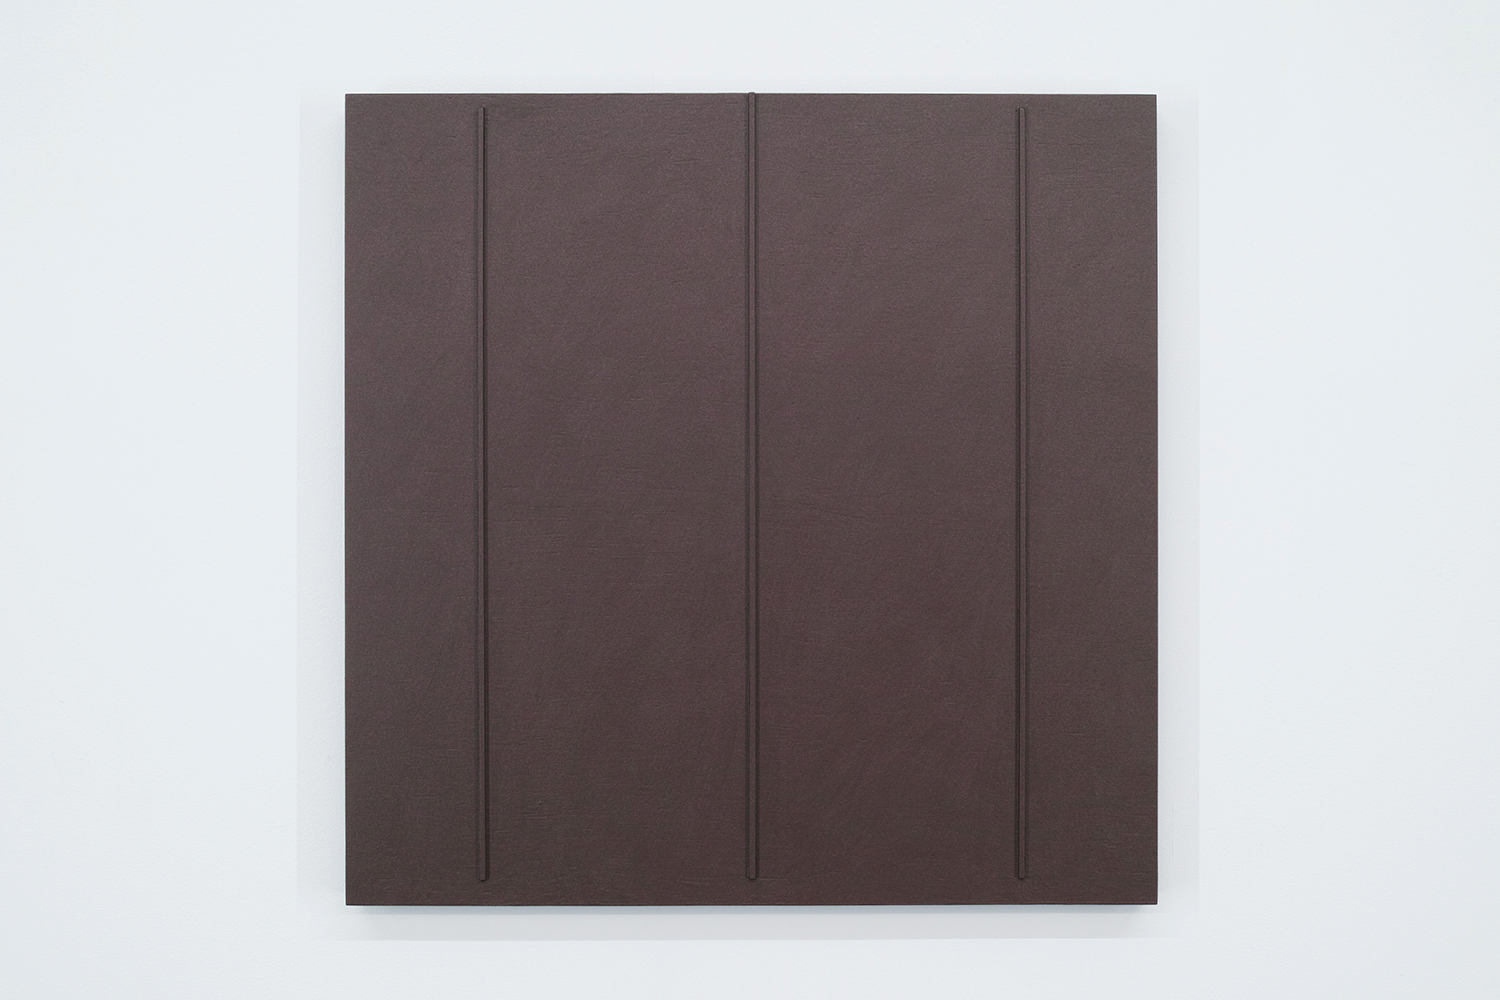 TS1808<br>Colour Gesso on Panel, 45 x 45 cm, 2018